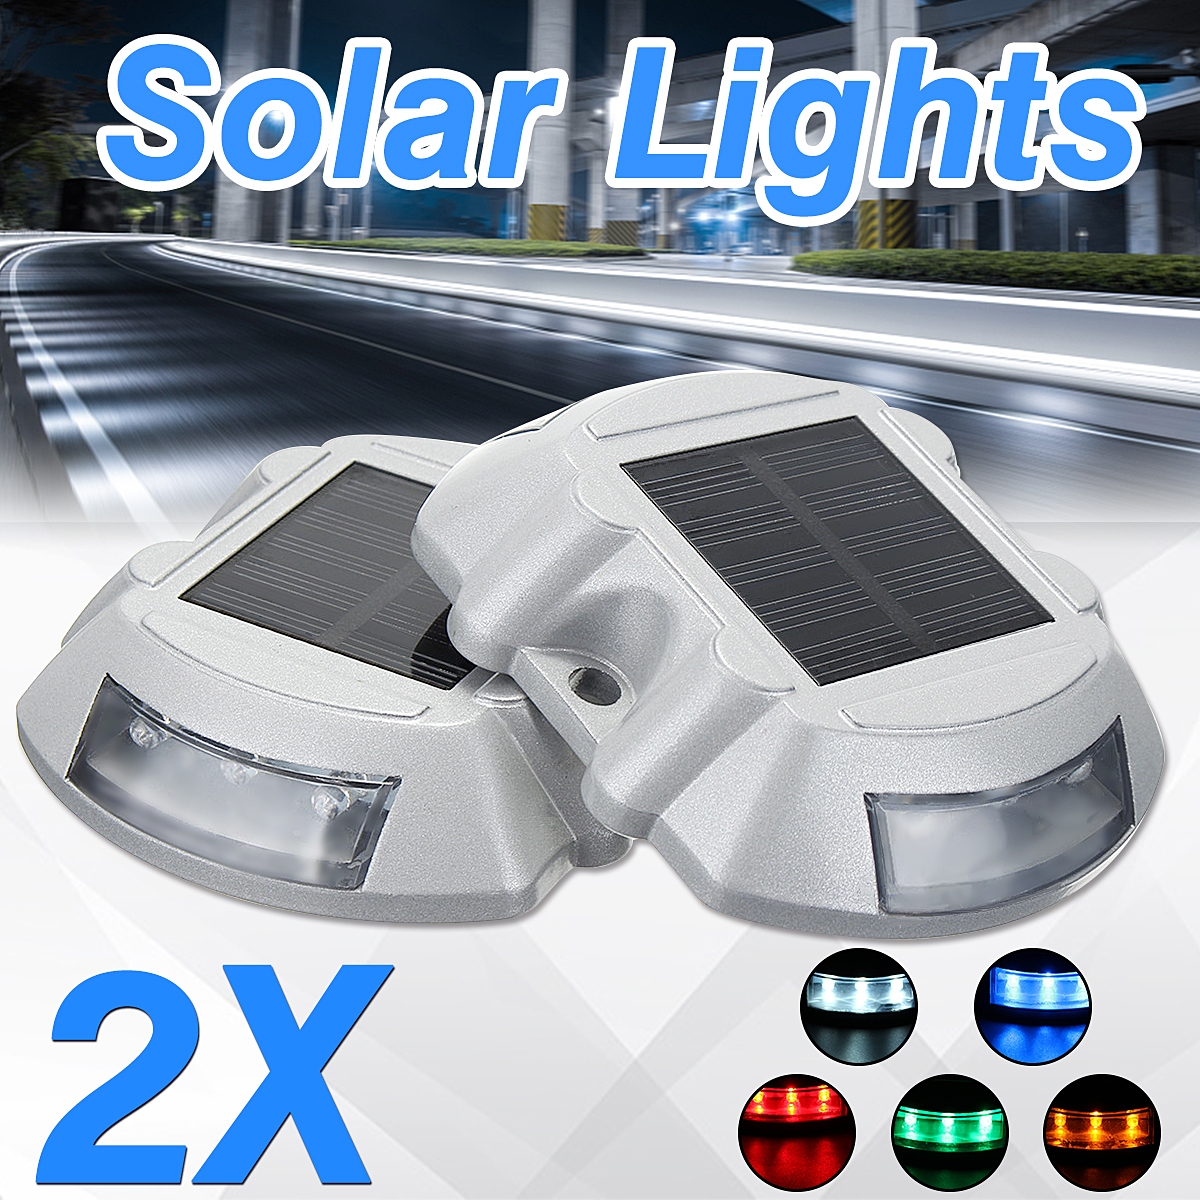 2PCS Solar LED Waterproof Pathway Driveway Light Lamp Dock Path Step Road Yard 5 Color Outdoor Path Lamp